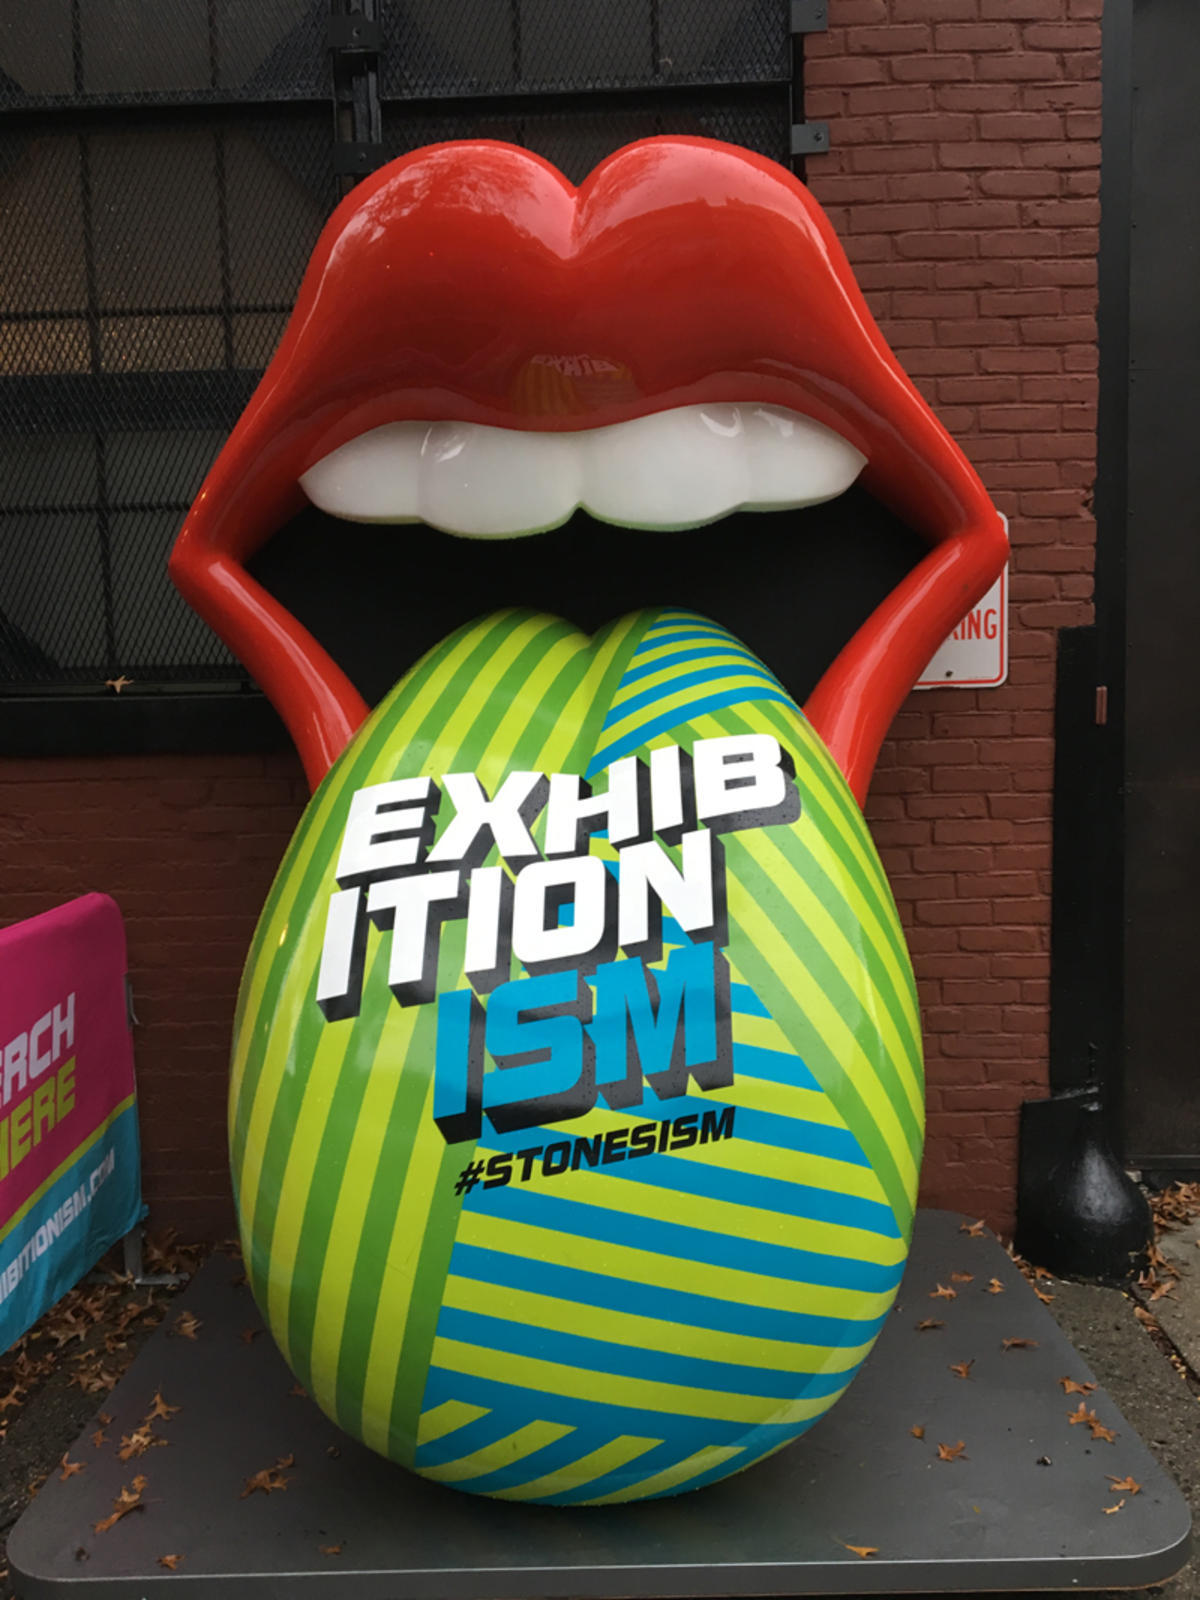 Experience Rolling Stones Exhibitionism!